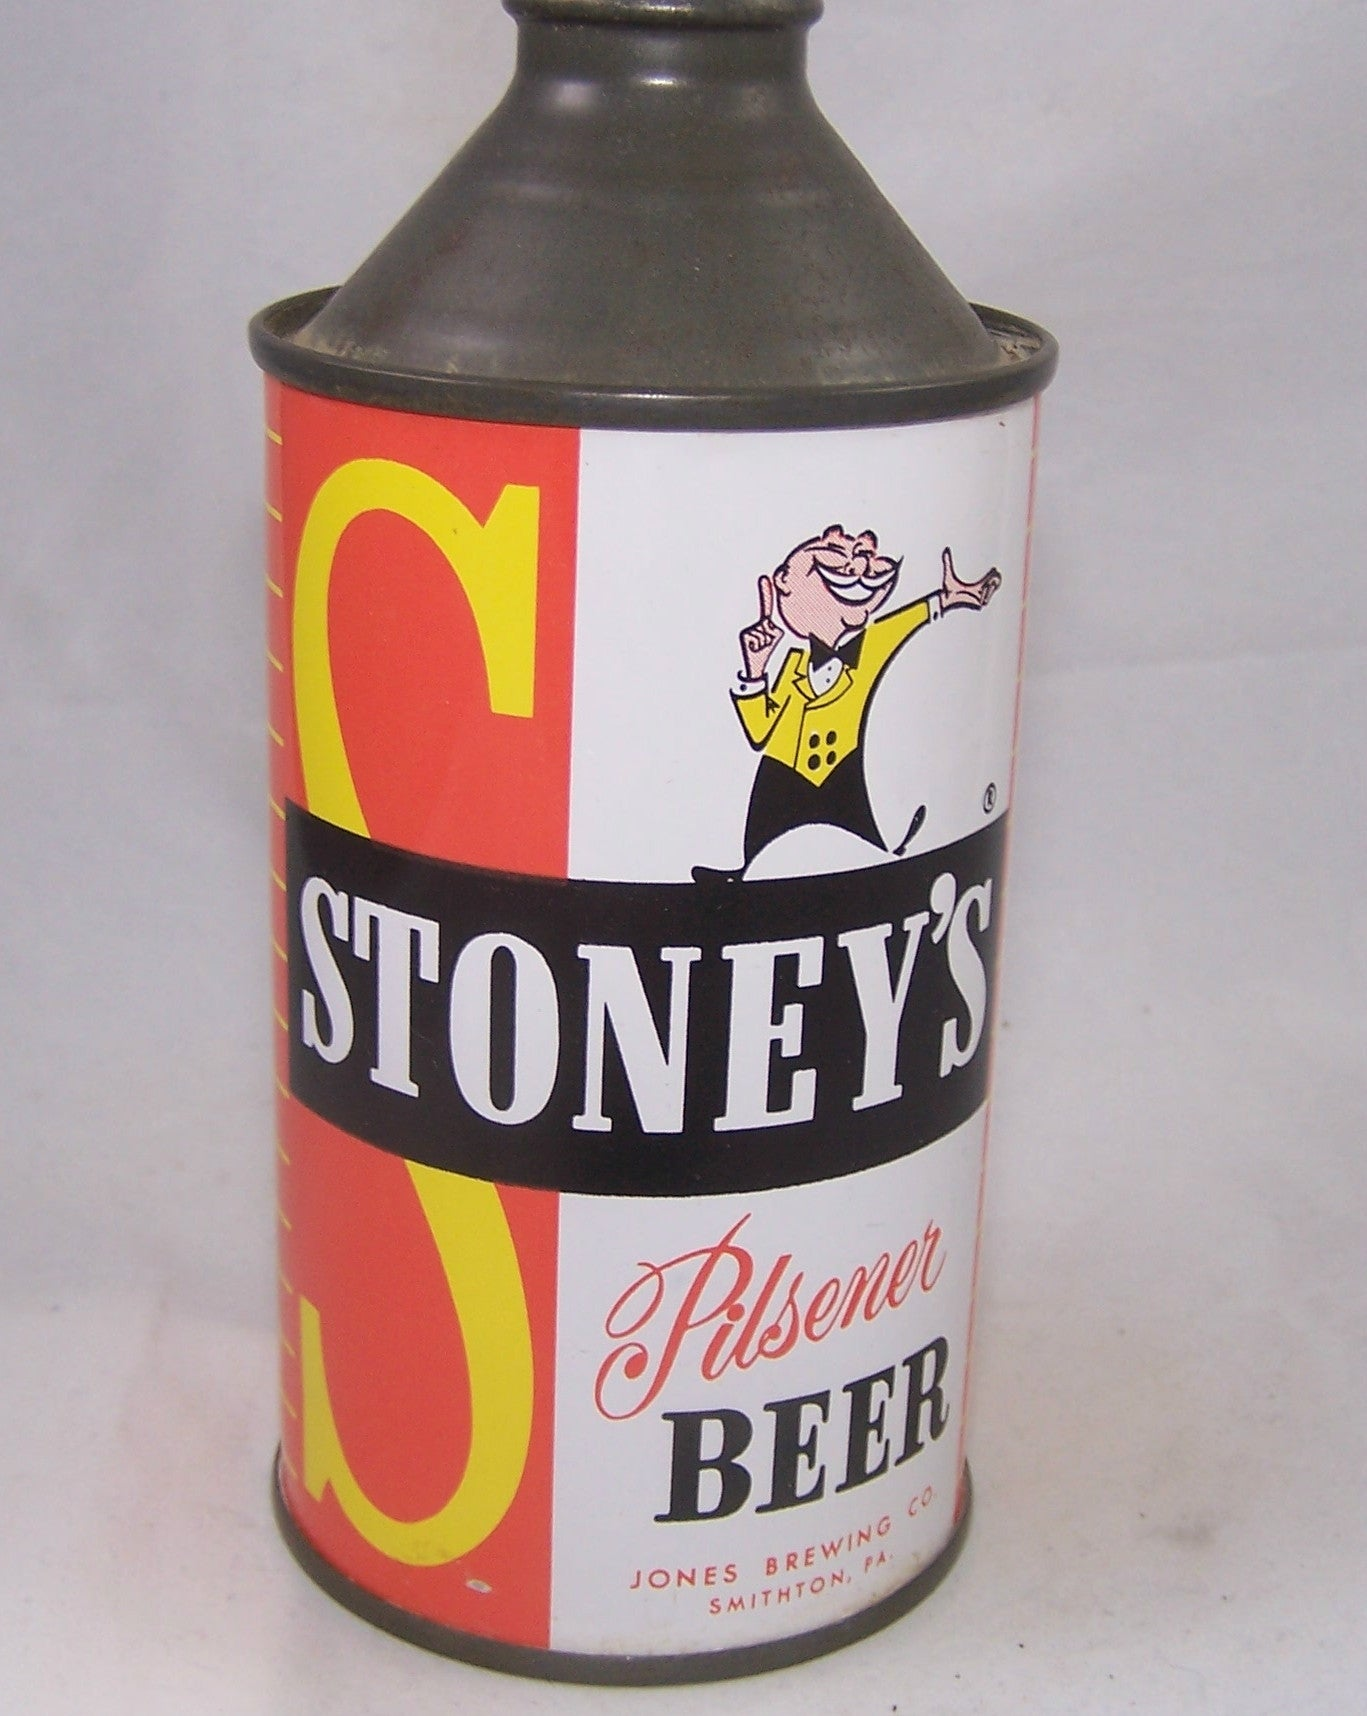 Stoney's Pilsener Beer, USBC 186-10, Grade 1/1+ Sold on 02/17